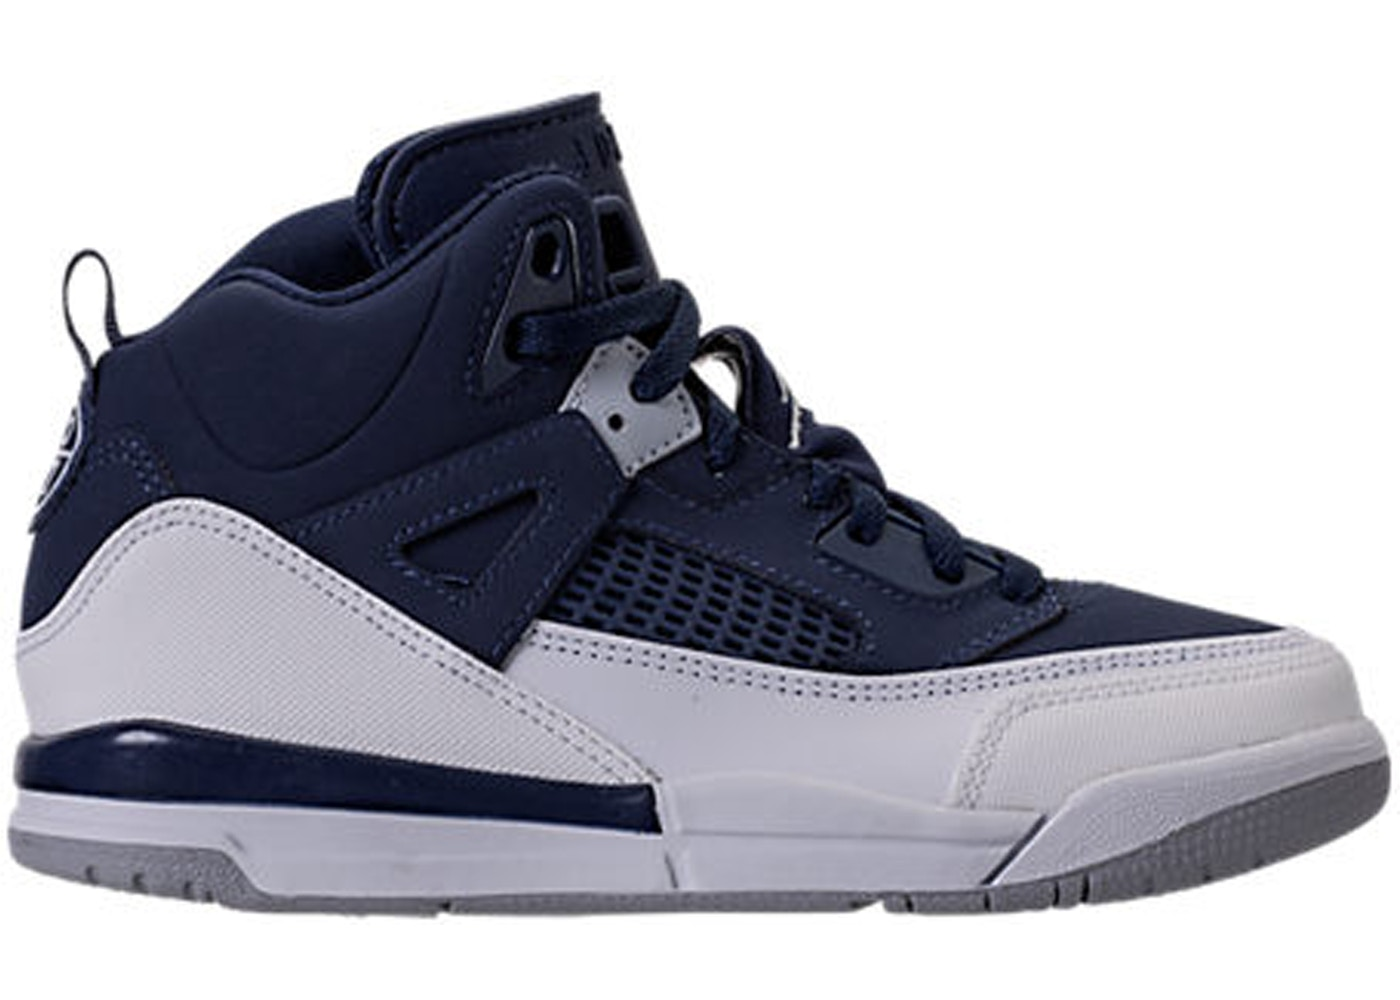 20548f9eaa7c80 Jordan Spizike Midnight Navy (PS) - 317700-406